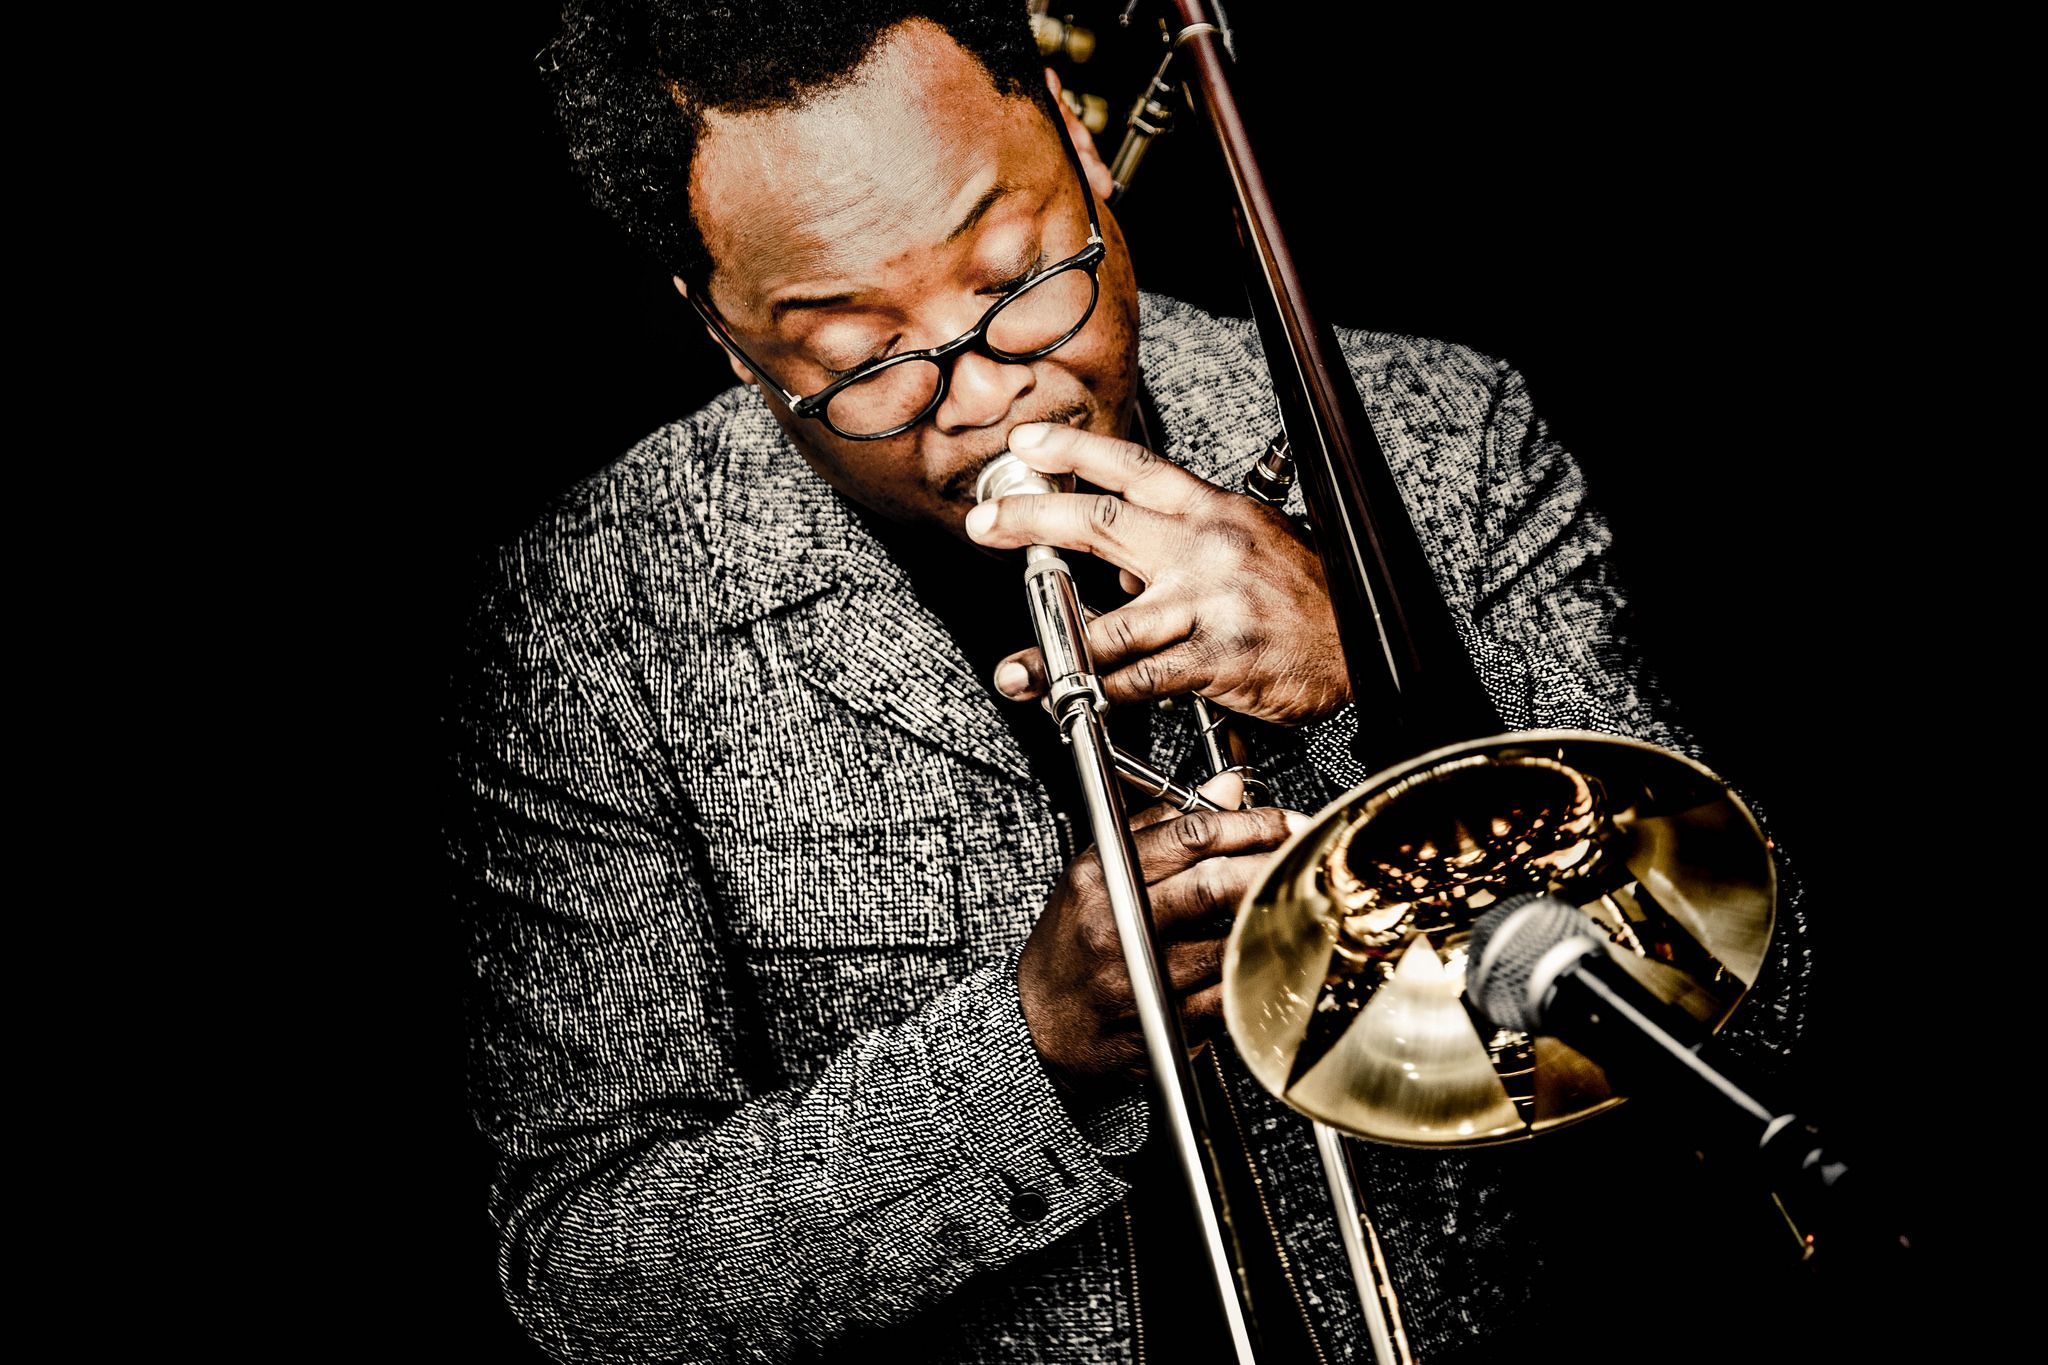 darren cowley | Dennis Rollins | I love jazz music and this guy knows…